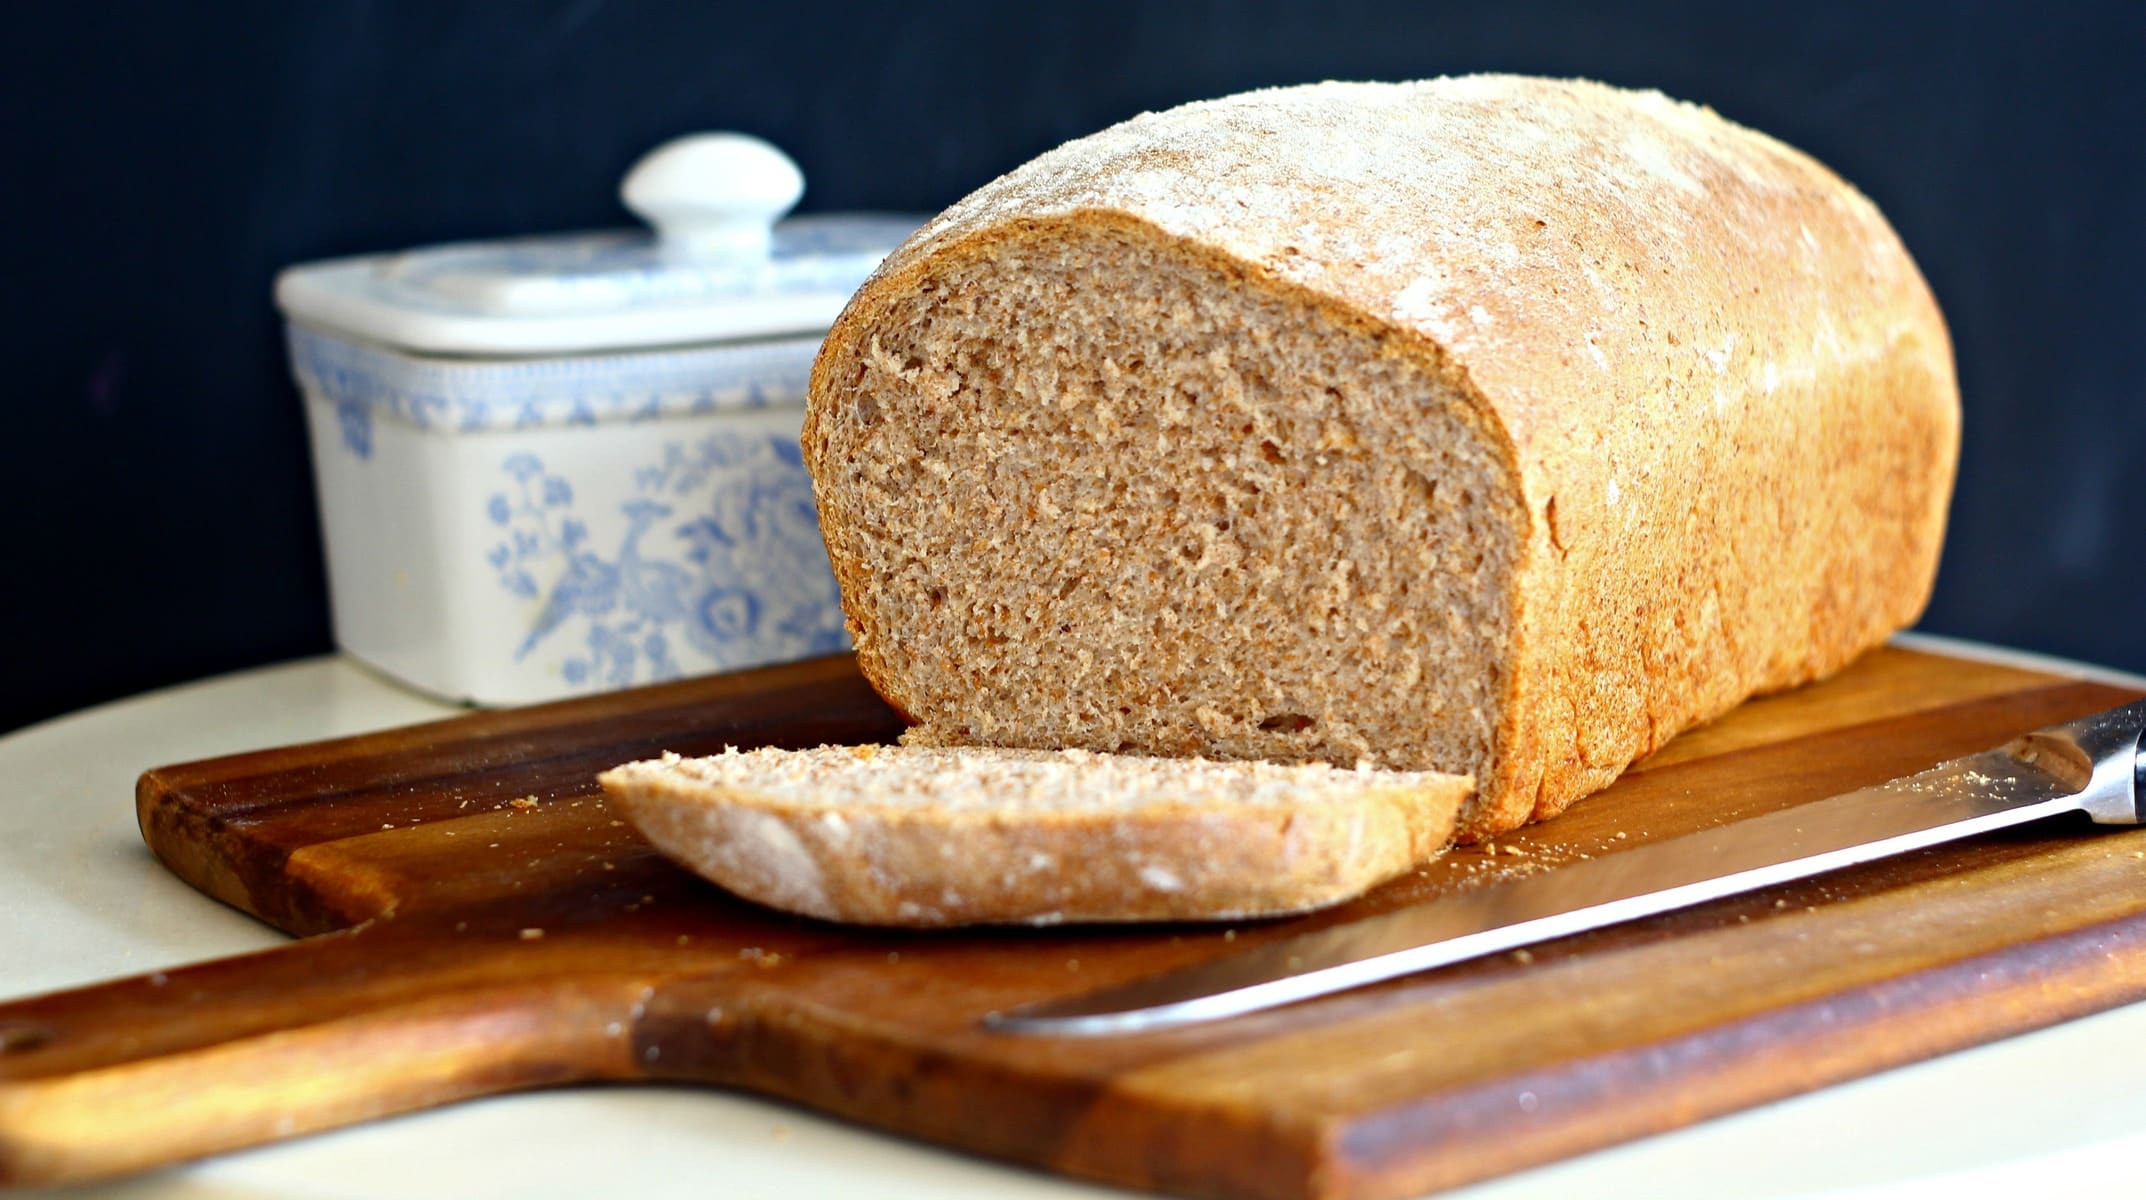 The best Wholemeal Bread.